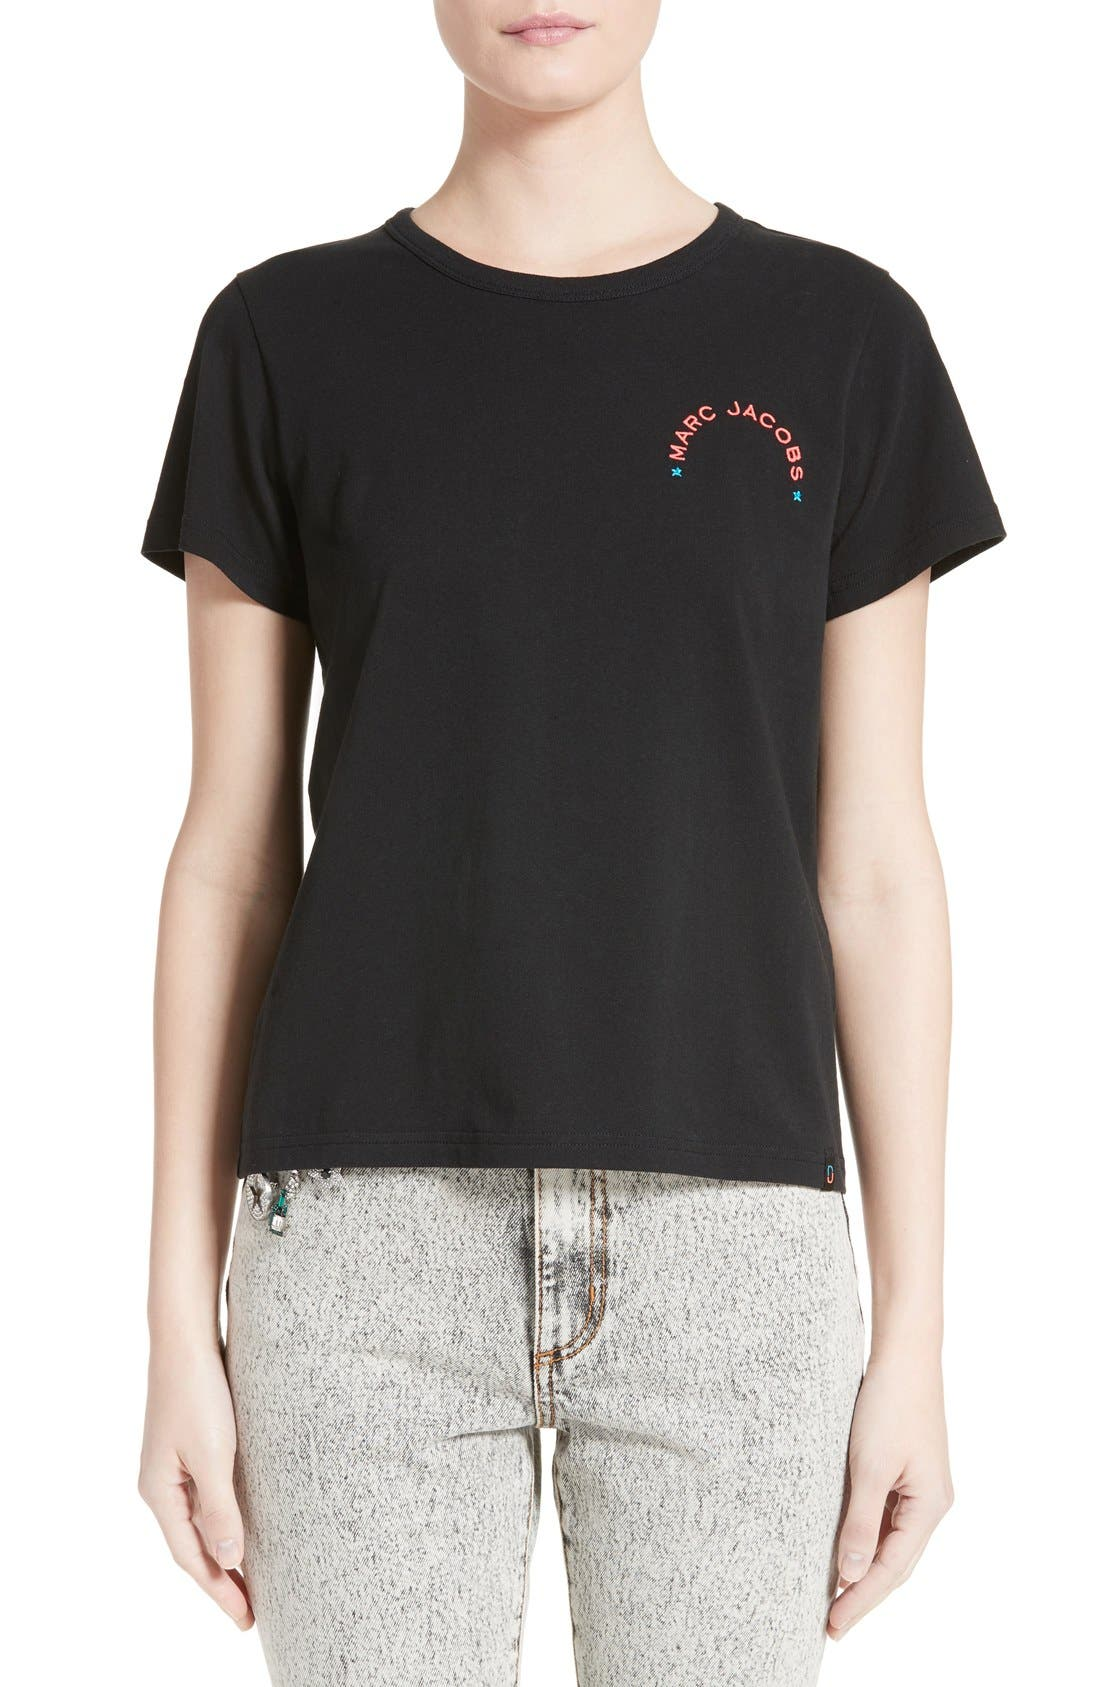 Alternate Image 1 Selected - MARC JACOBS Embroidered Tee